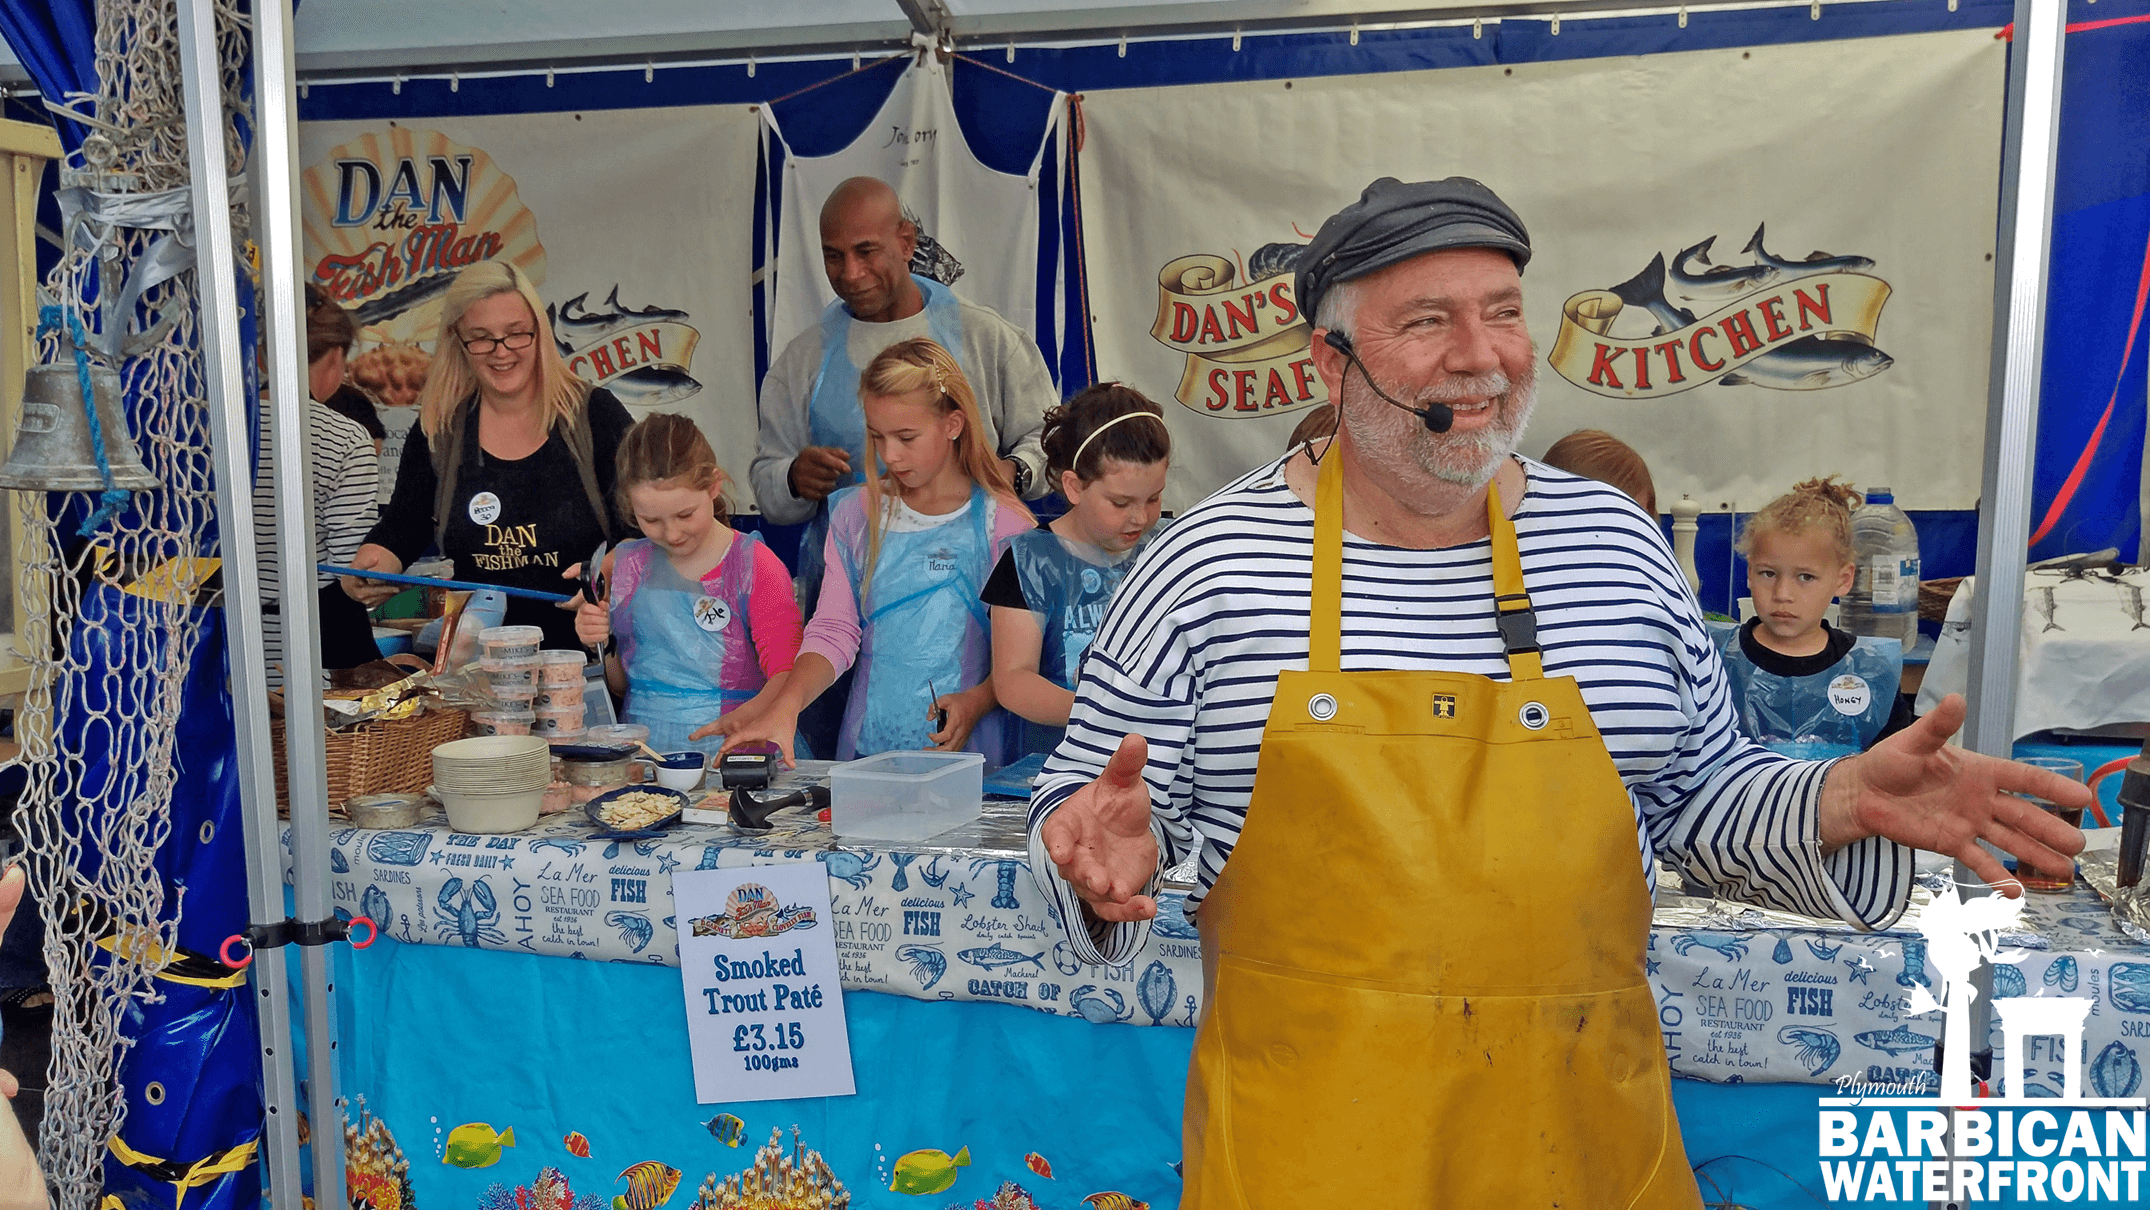 Plymouth Seafood Festival Barbican Waterfront Events